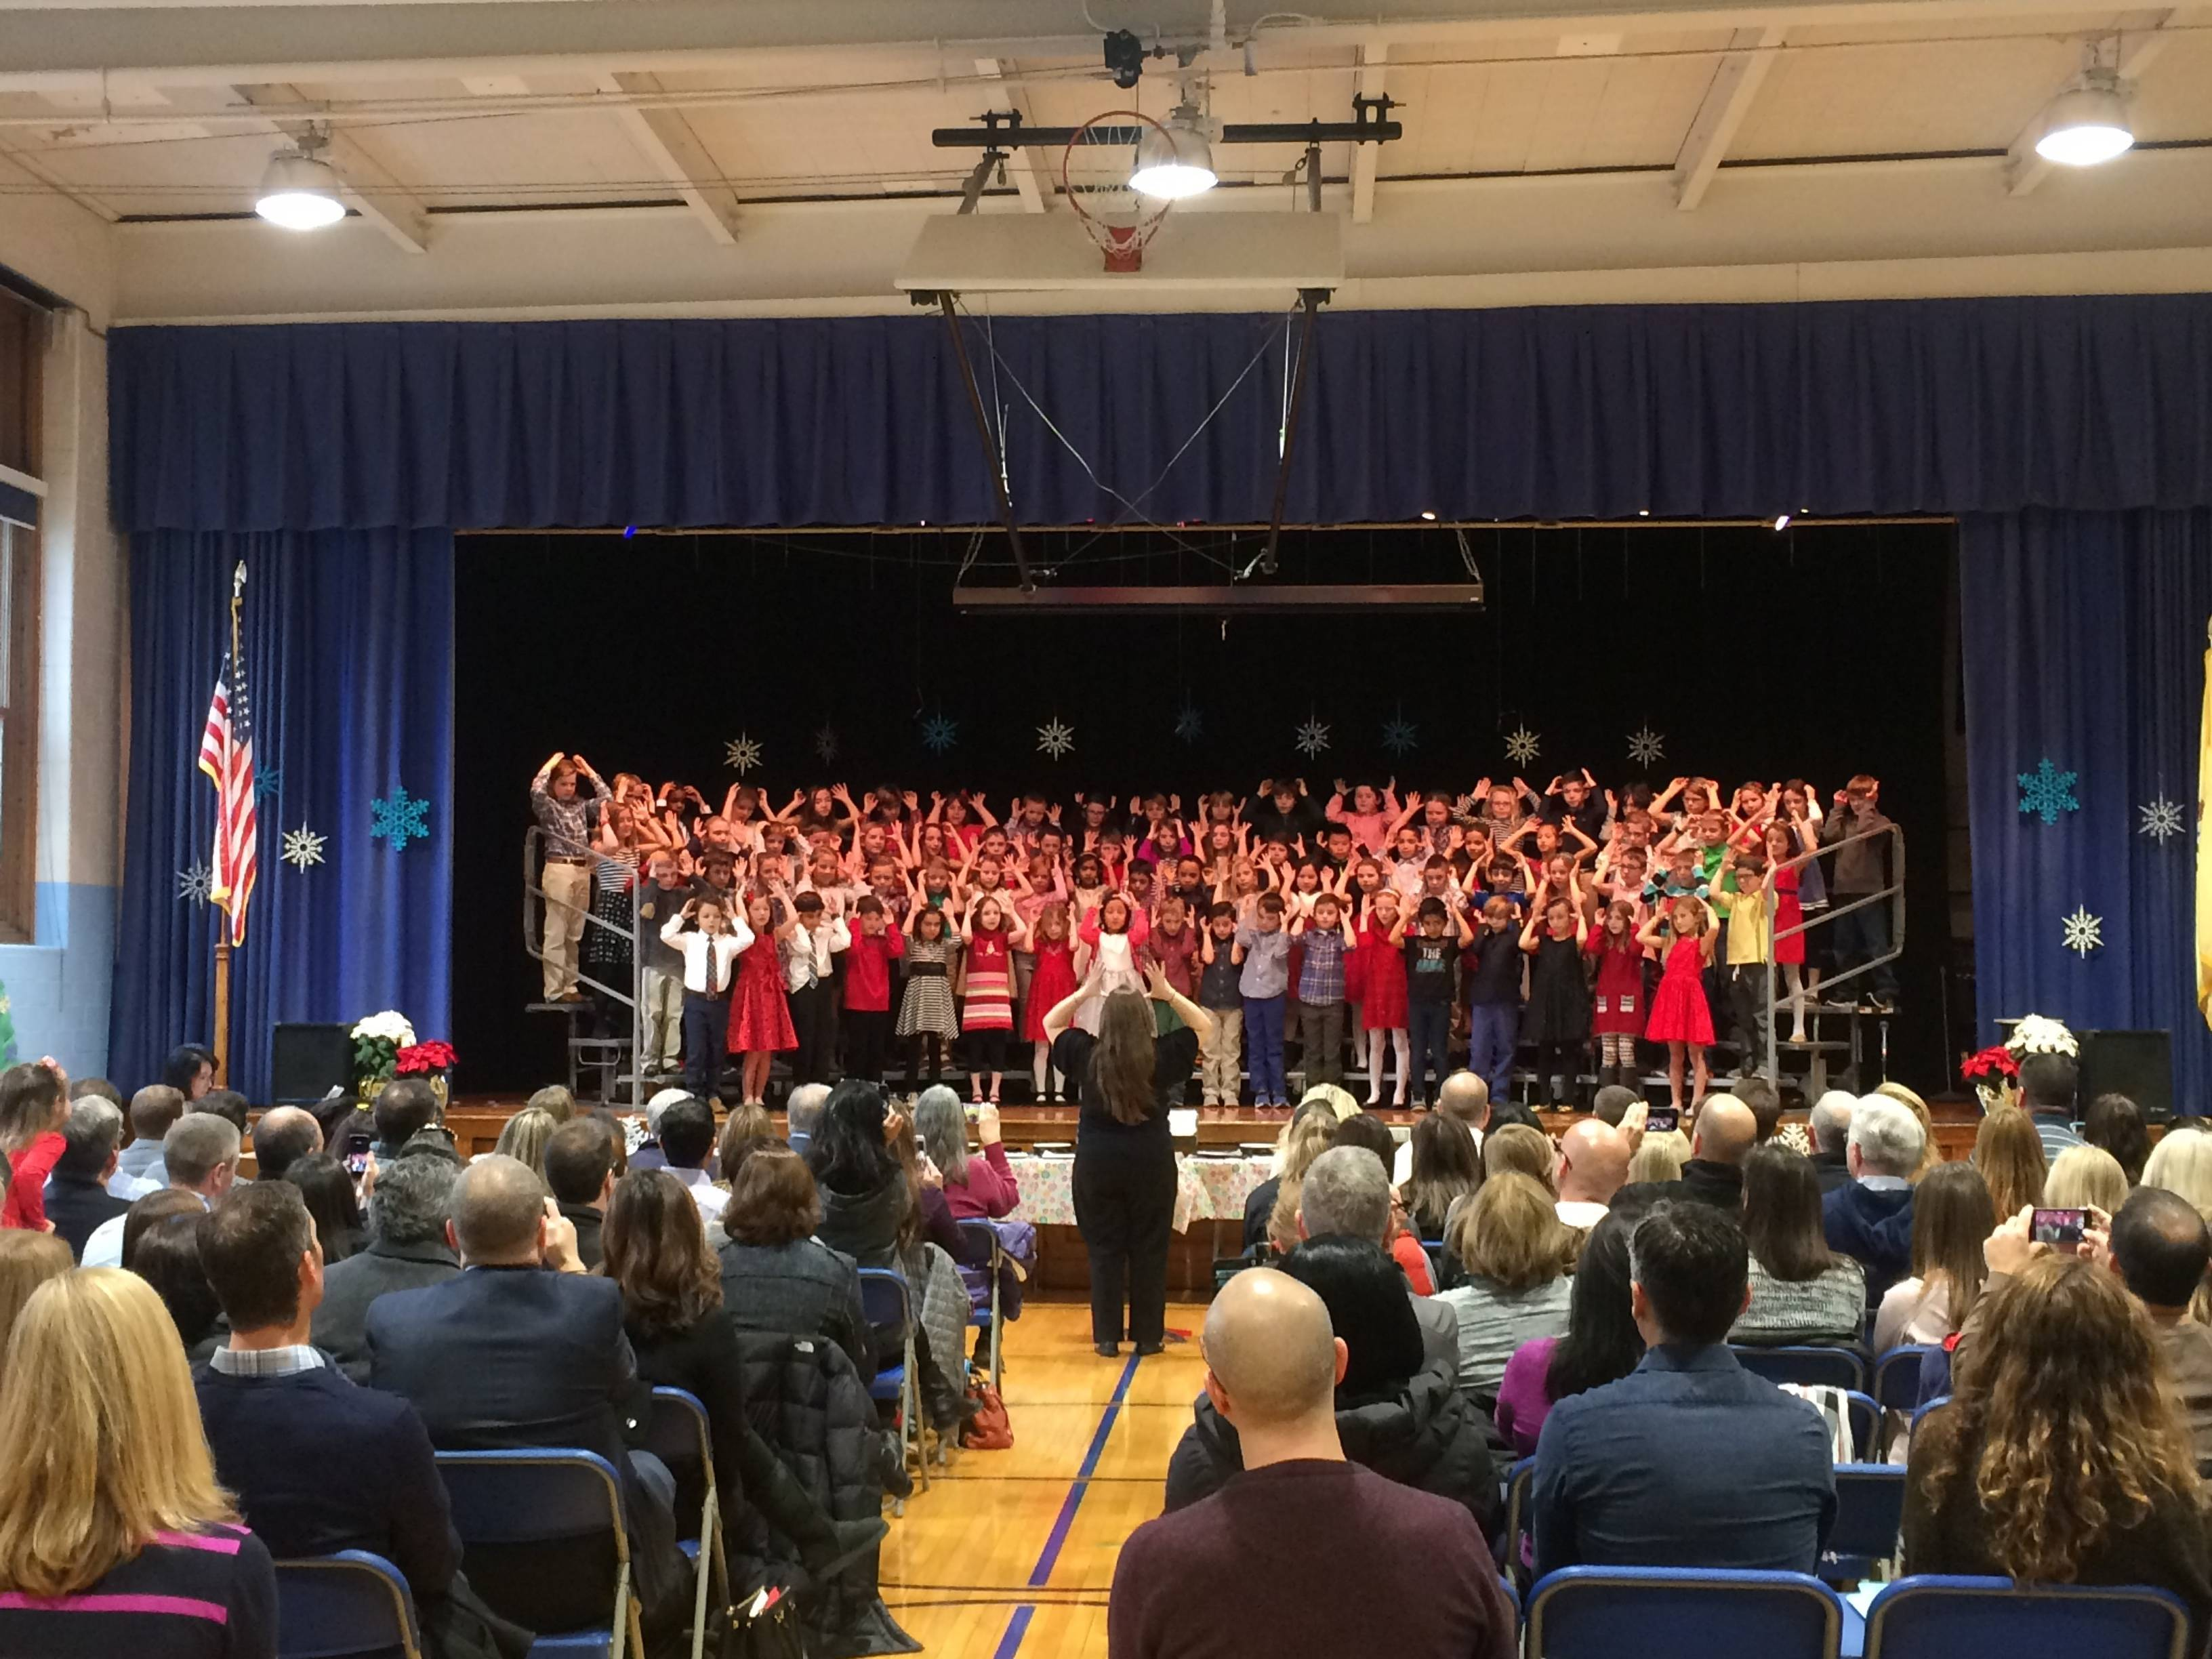 d5aa594ba1f4e002c44c_Milton_Avenue_School_s_3rd_graders_perform_under_Veronica_Shaw_s_direction.jpg